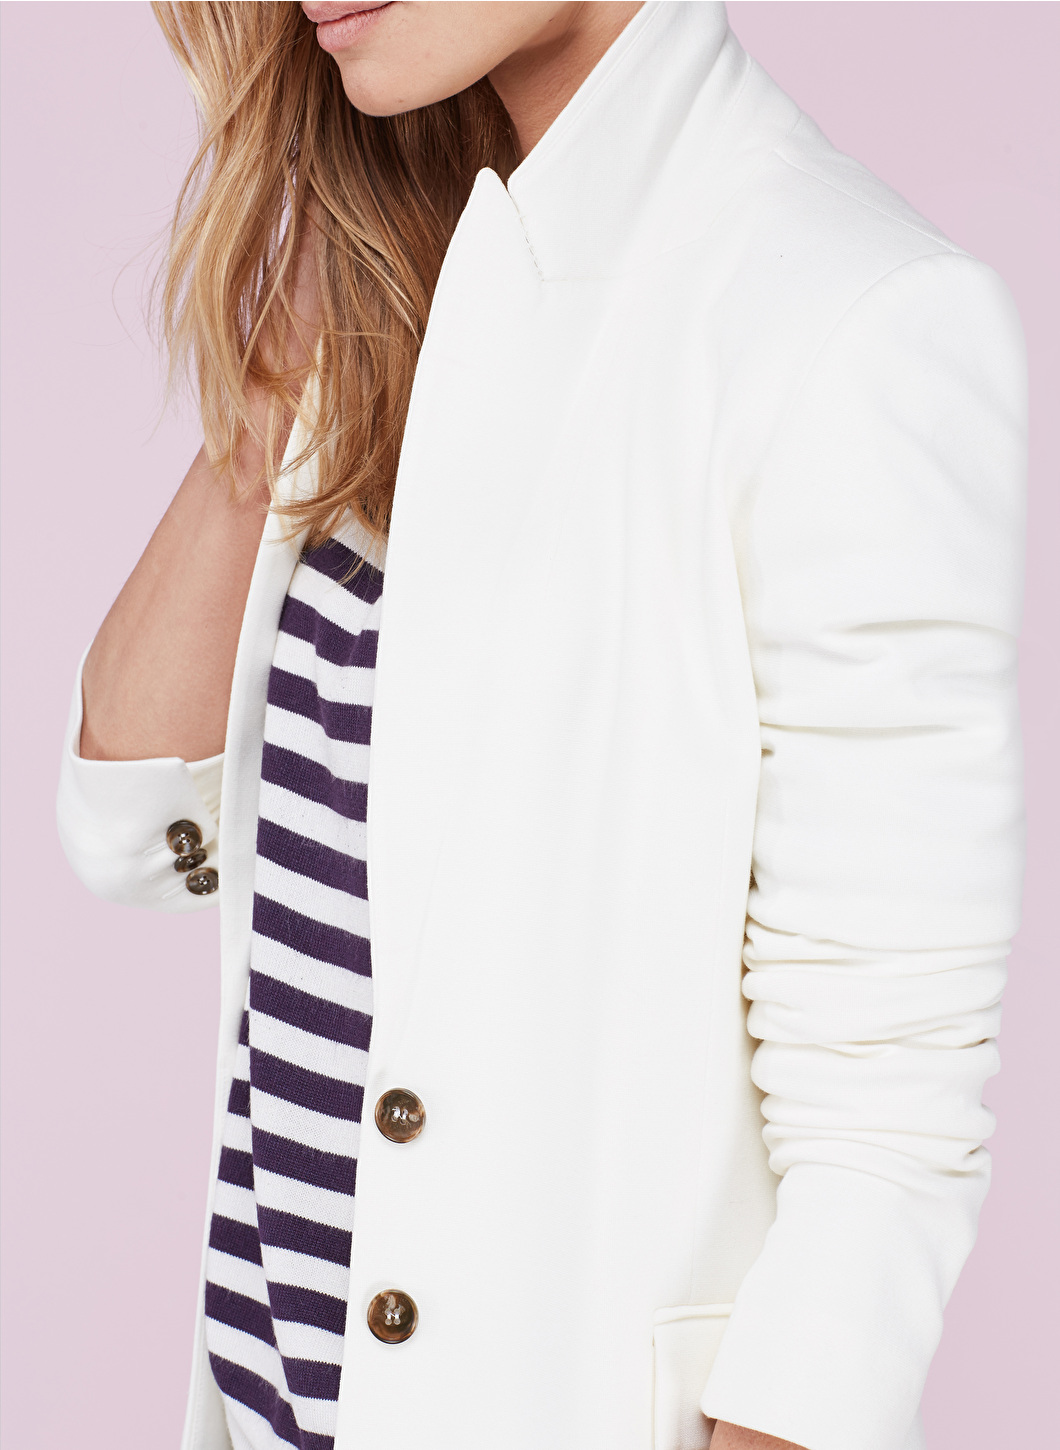 Check out this beautiful classic women's blazer by Bauken - Roxanne Carne | Personal Stylist www.roxannecarne.com